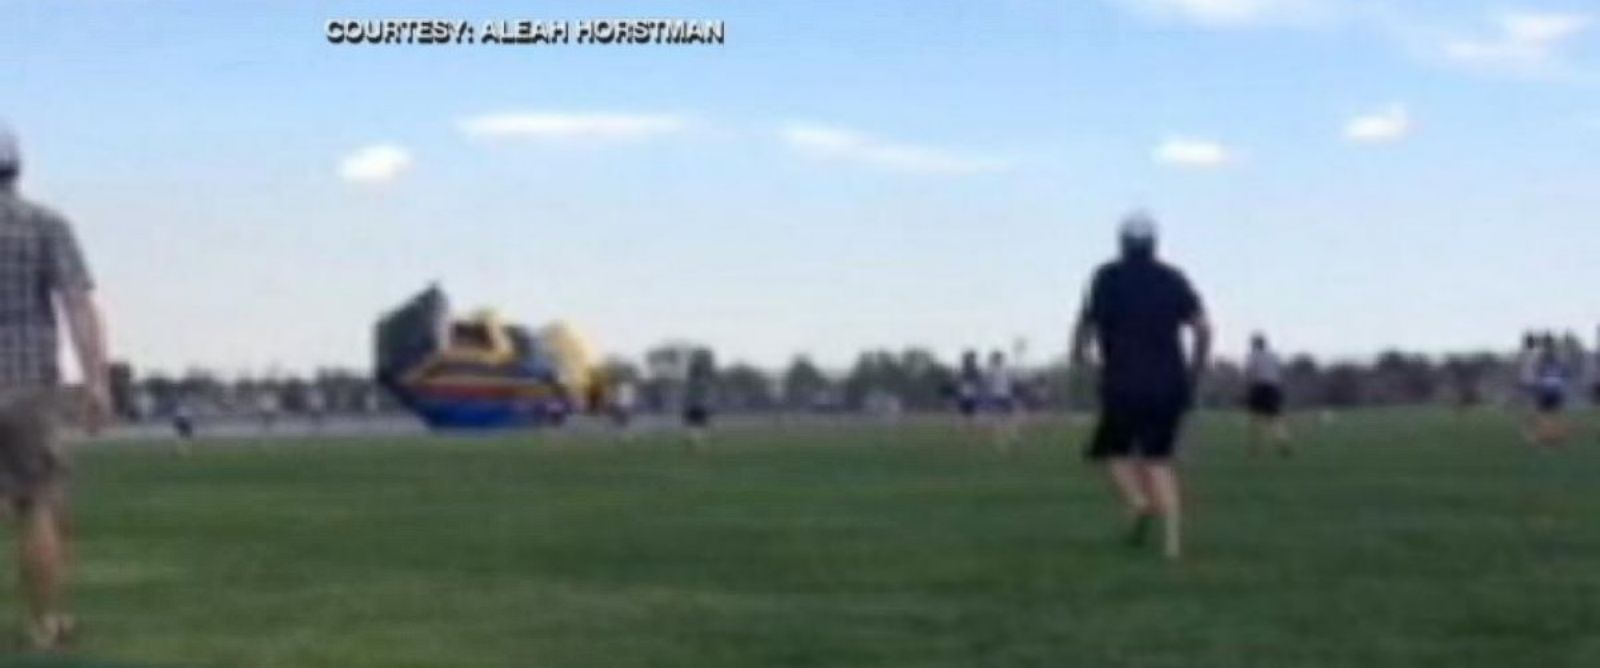 PHOTO: Bounce house goes airborne with two children inside.